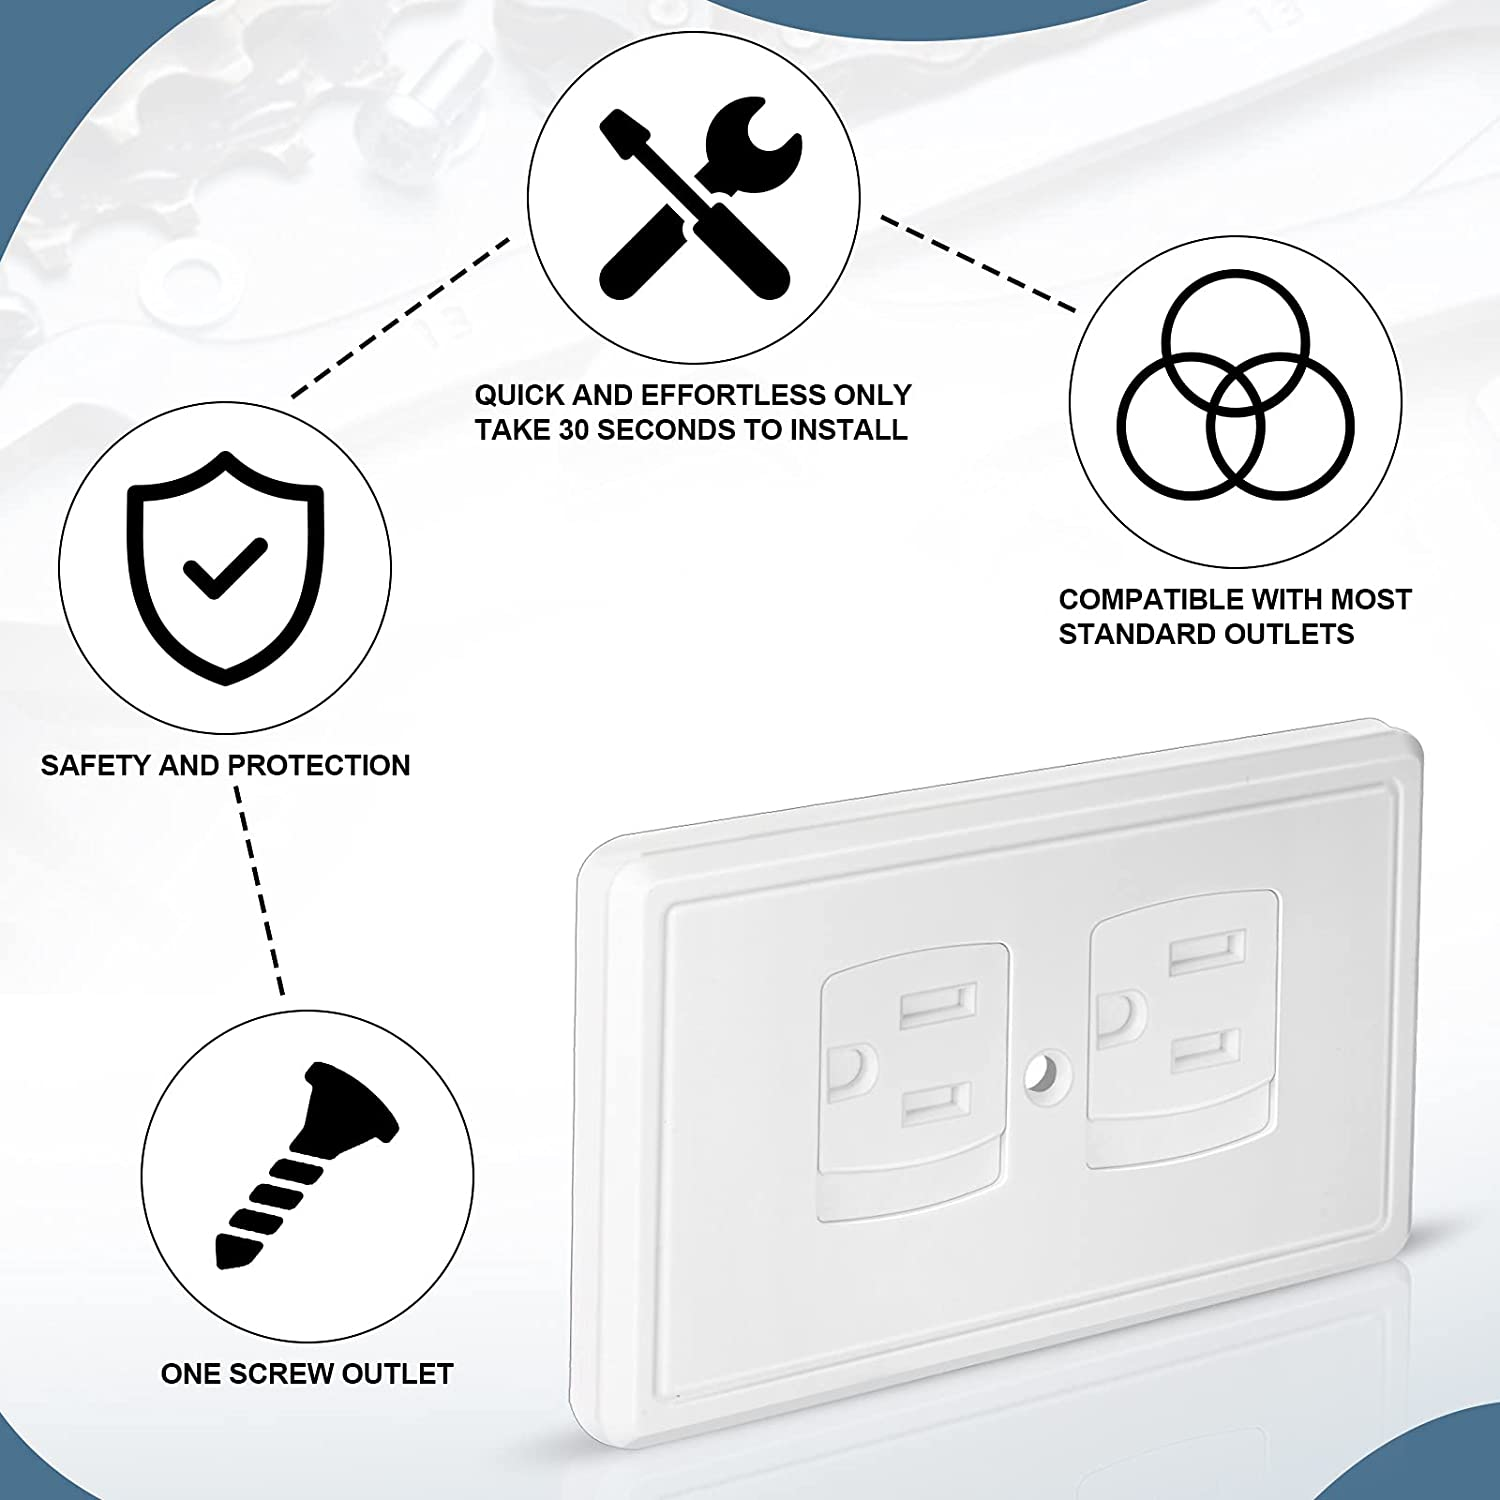 6 Pieces Safety Self-Closing Covers with Screw Standard Outlet Covers, Alternative Wall Socket Covers Plug Protector for Child Proofing Outlets (White)